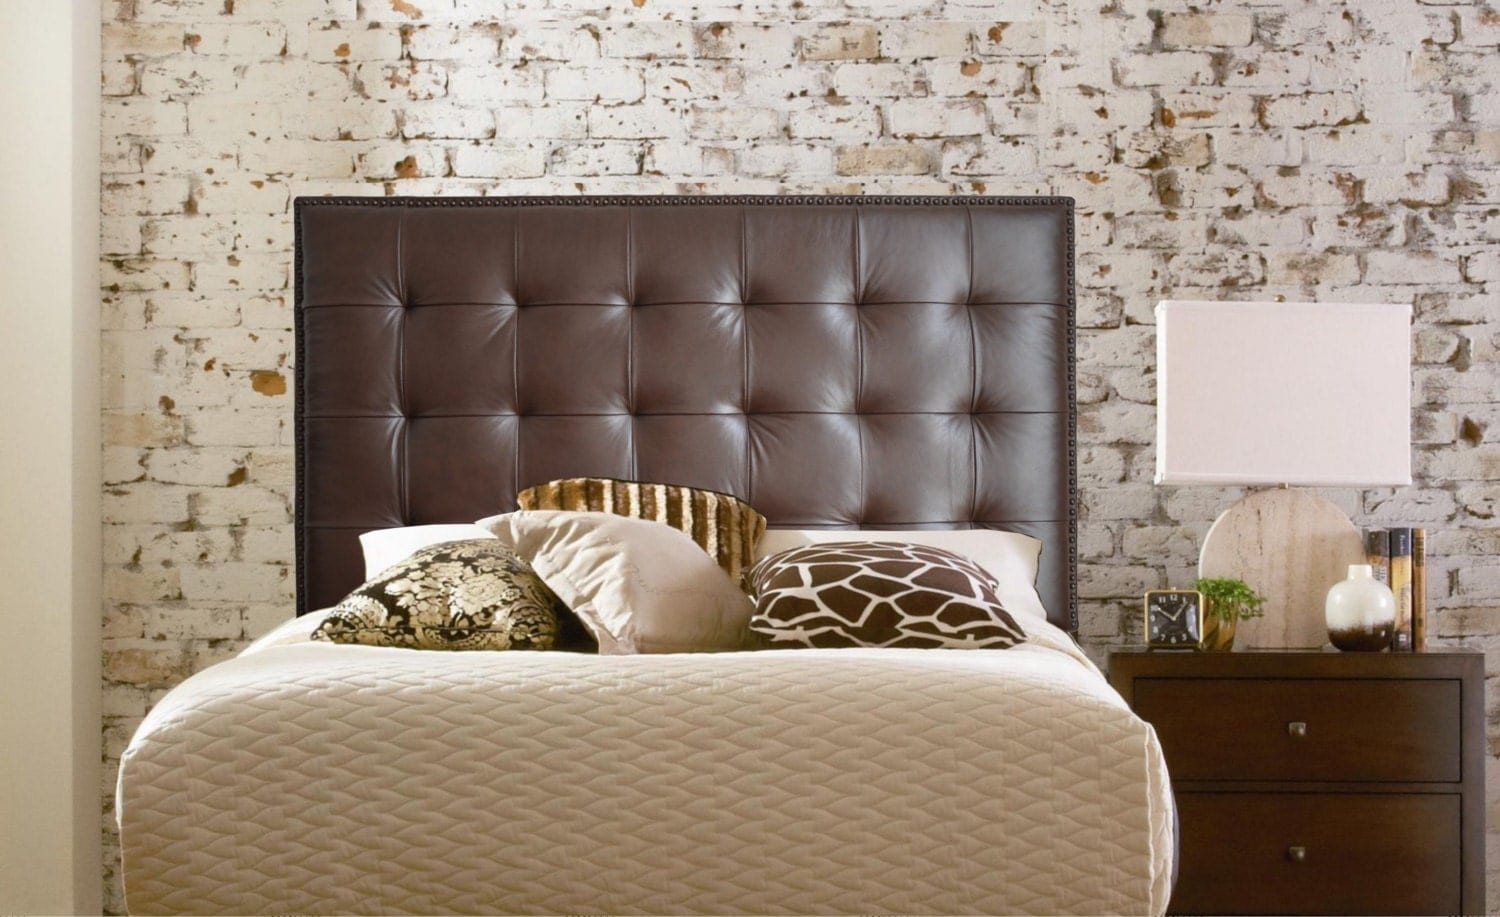 Wall Mounted Queen Size Extra Tall Headboard Upholstered In: wall mounted queen headboard